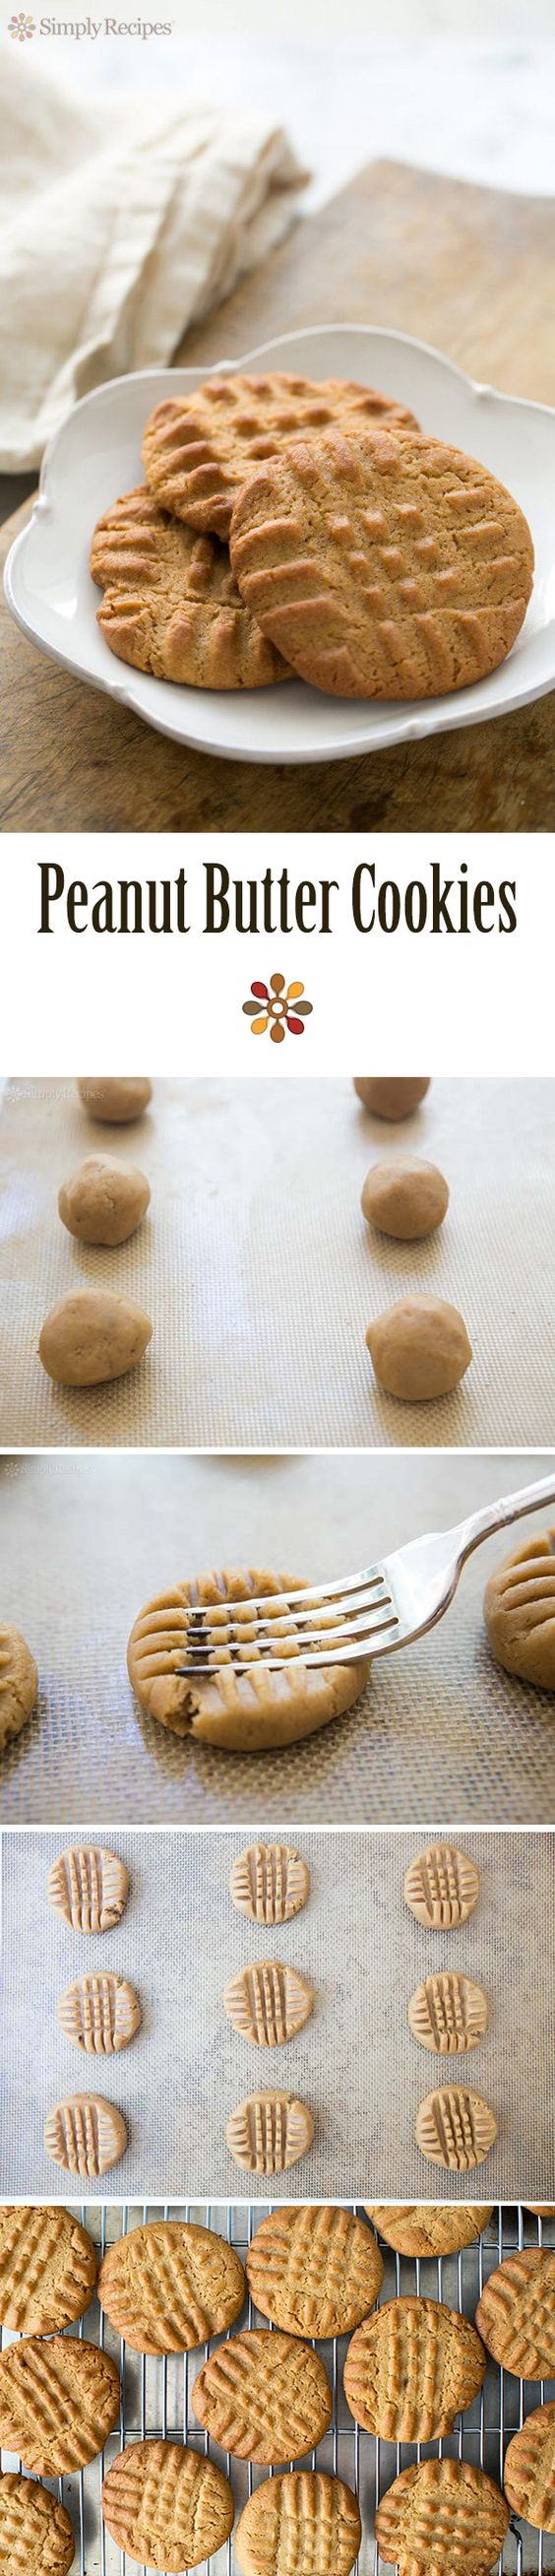 Best Peanut Butter Cookies EVER! Easy to make, classic ...